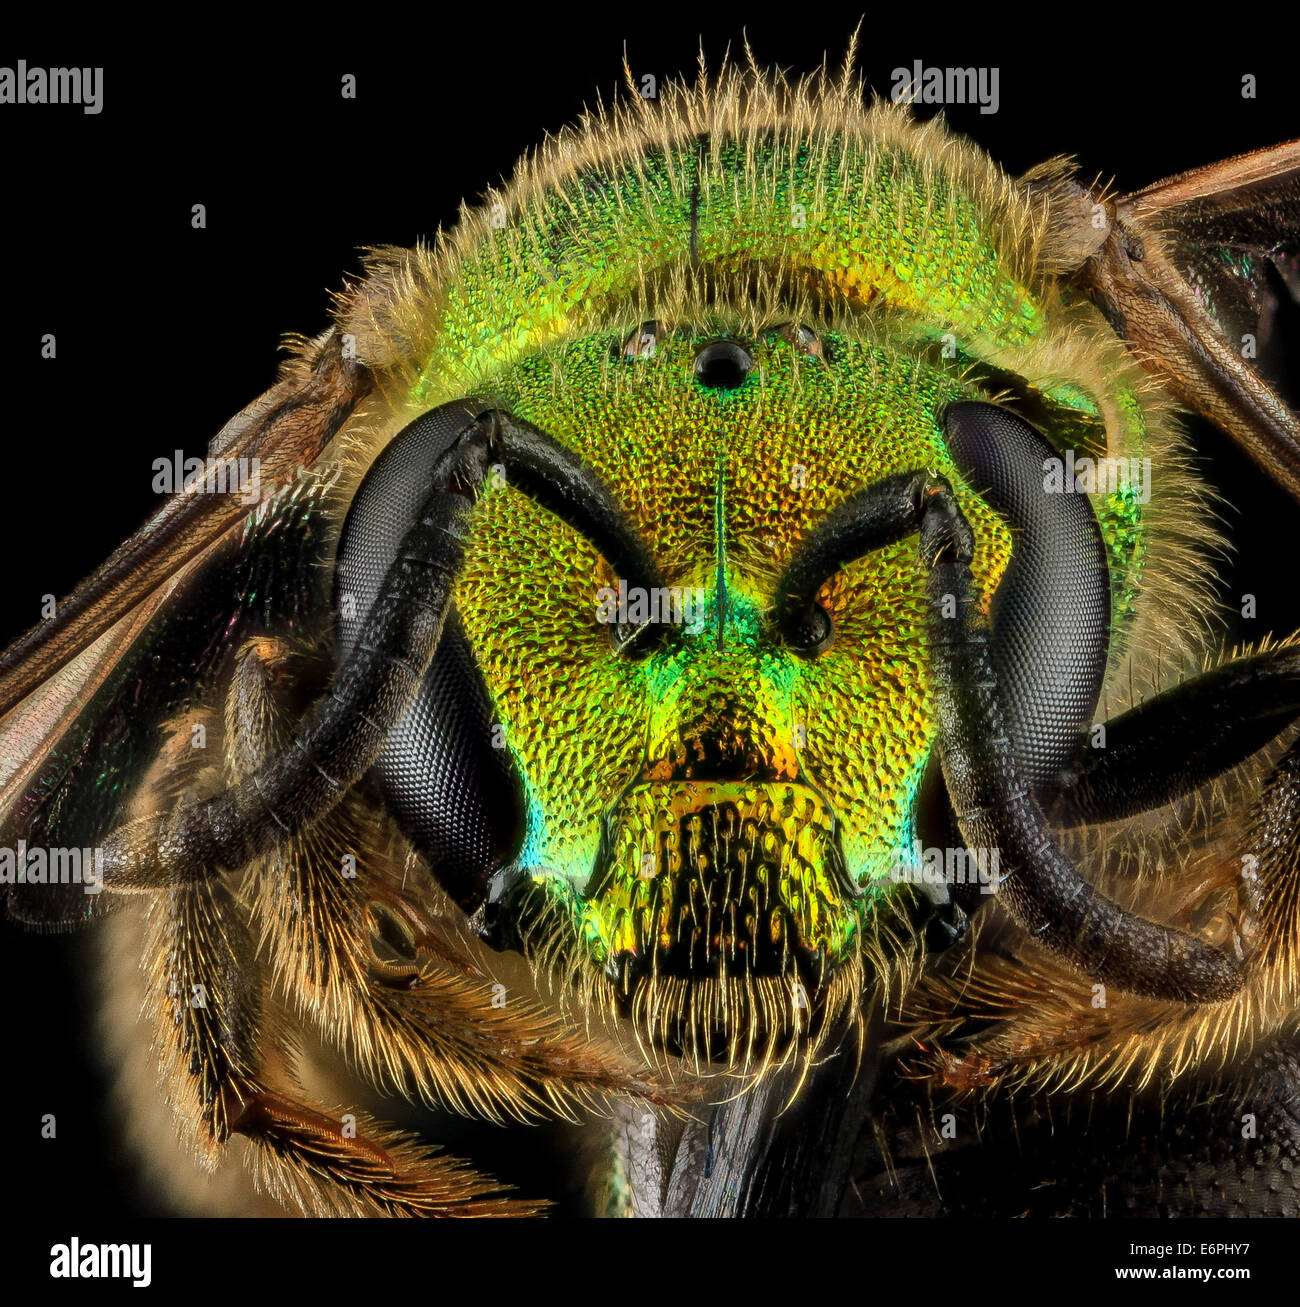 Augochlorella aurata, F, Face, MD, Boonsboro_2013-07-01-150126 ZS PMax_9195495923_o One of the most common bees - Stock Image